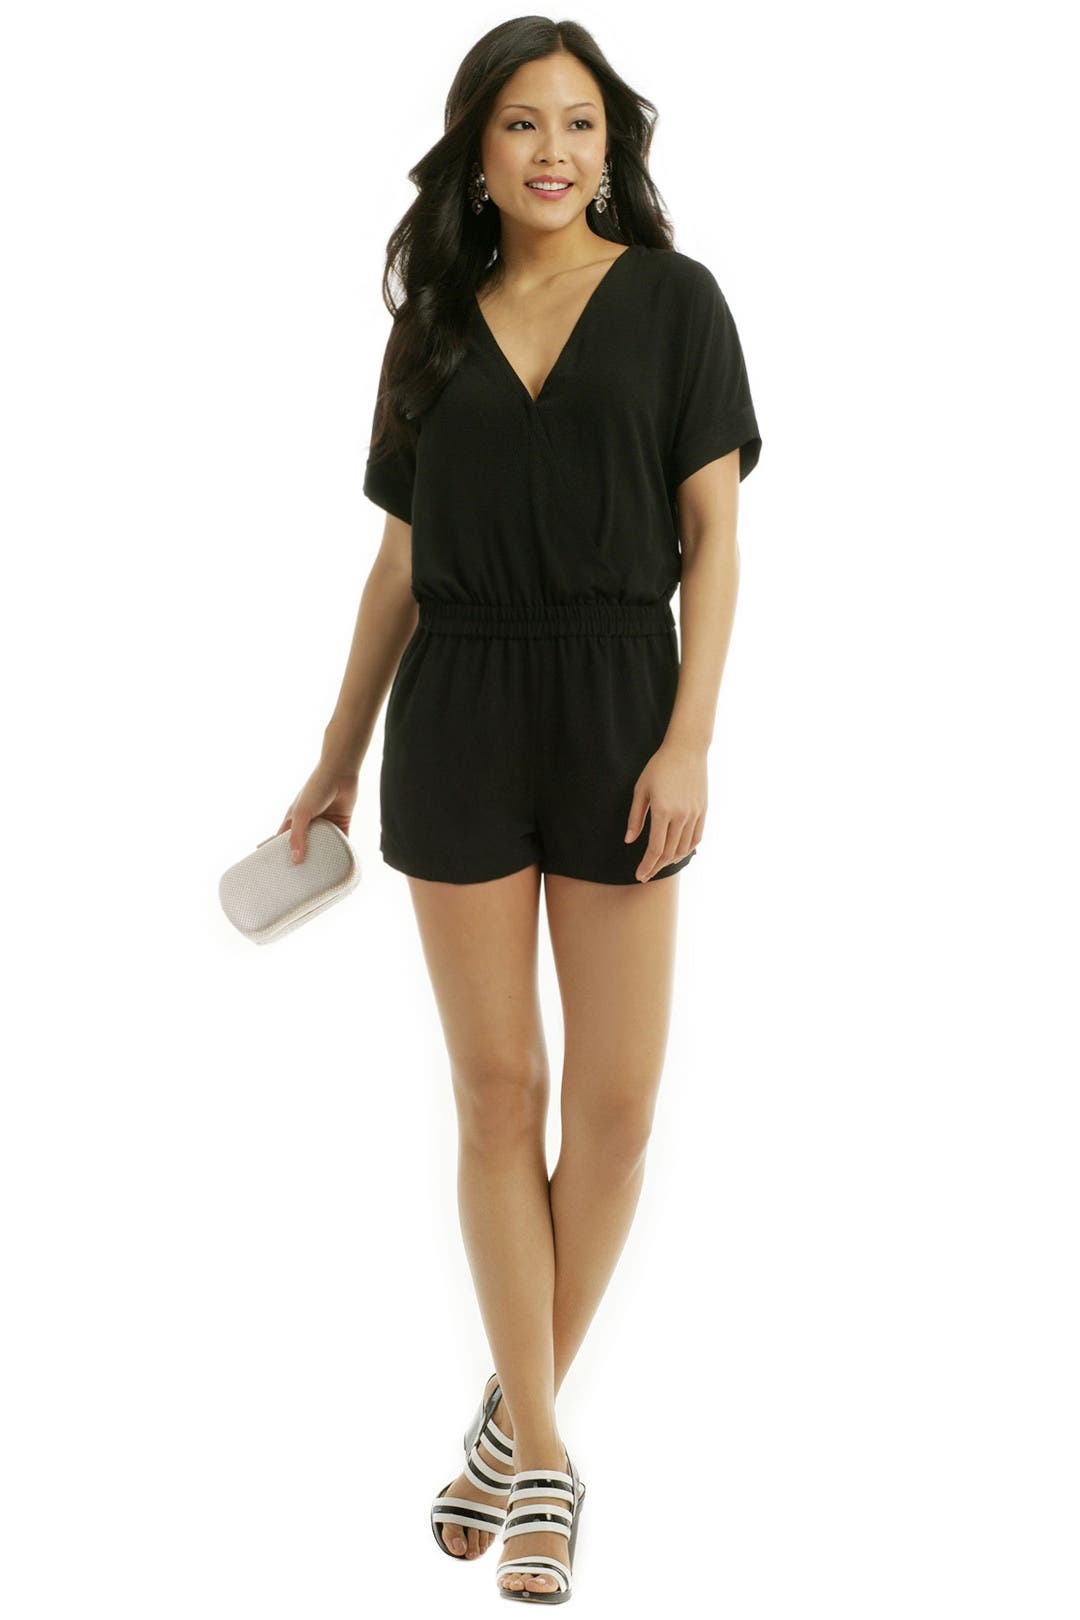 Black dress romper - Black Dress Romper 40